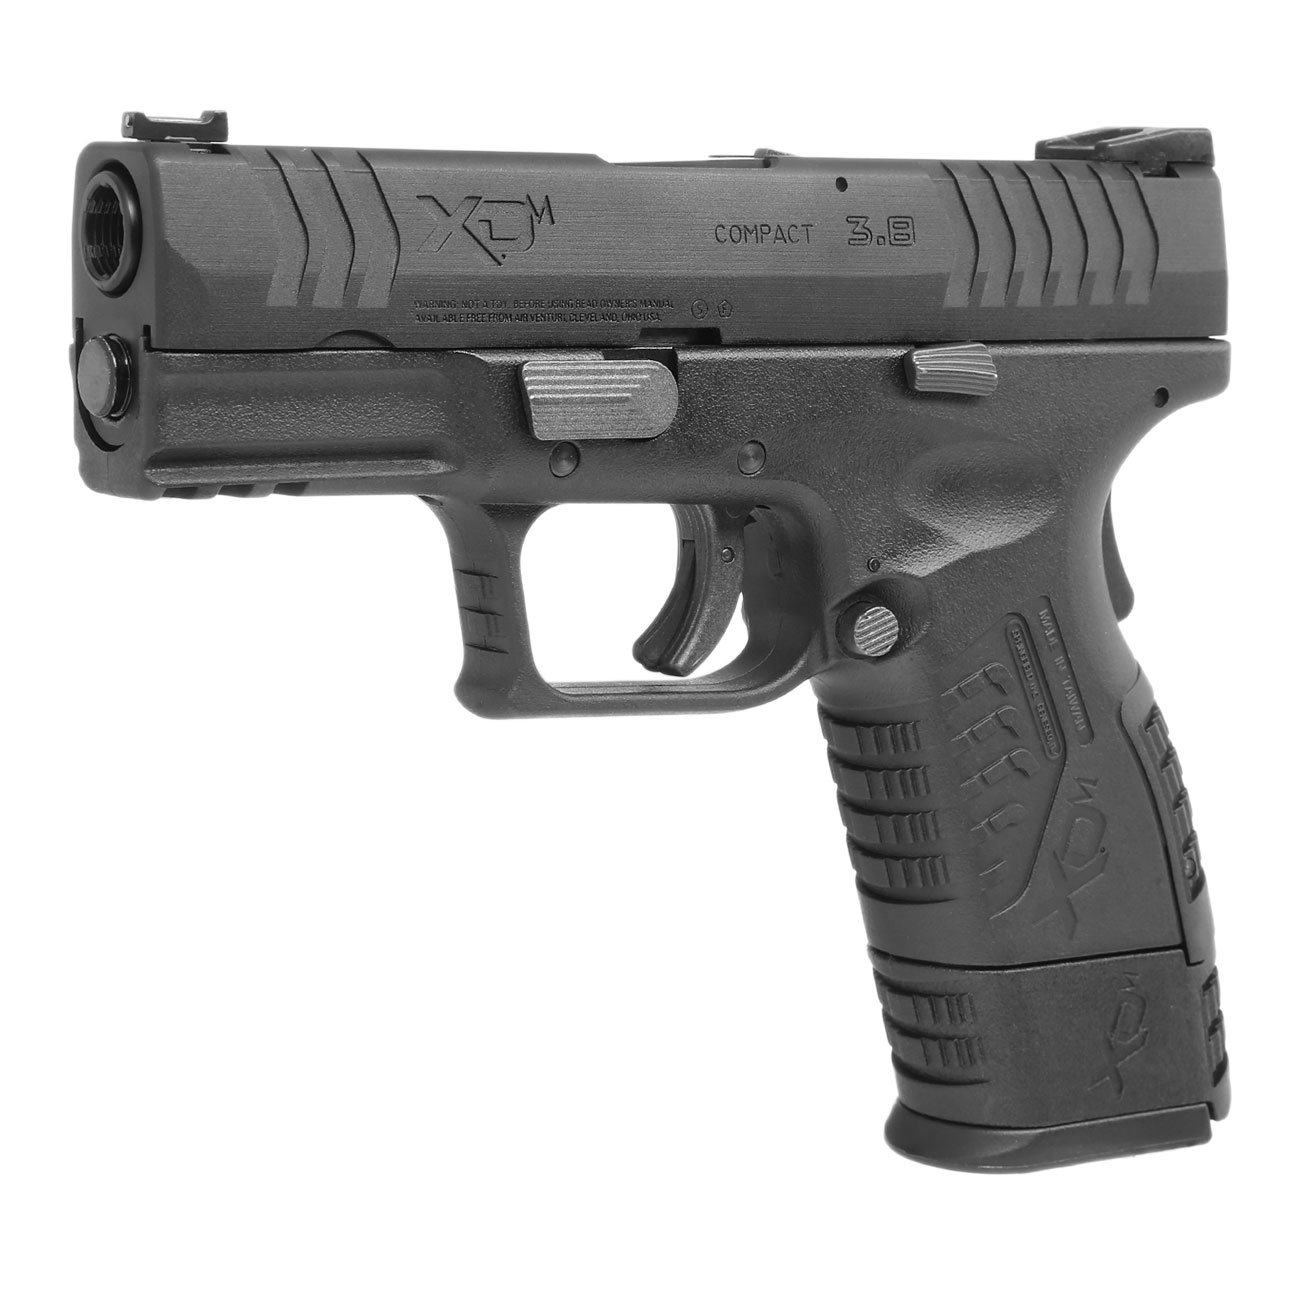 Springfield XDM Compact CO2-Luftpistole 4,5mm BB Blowback 1